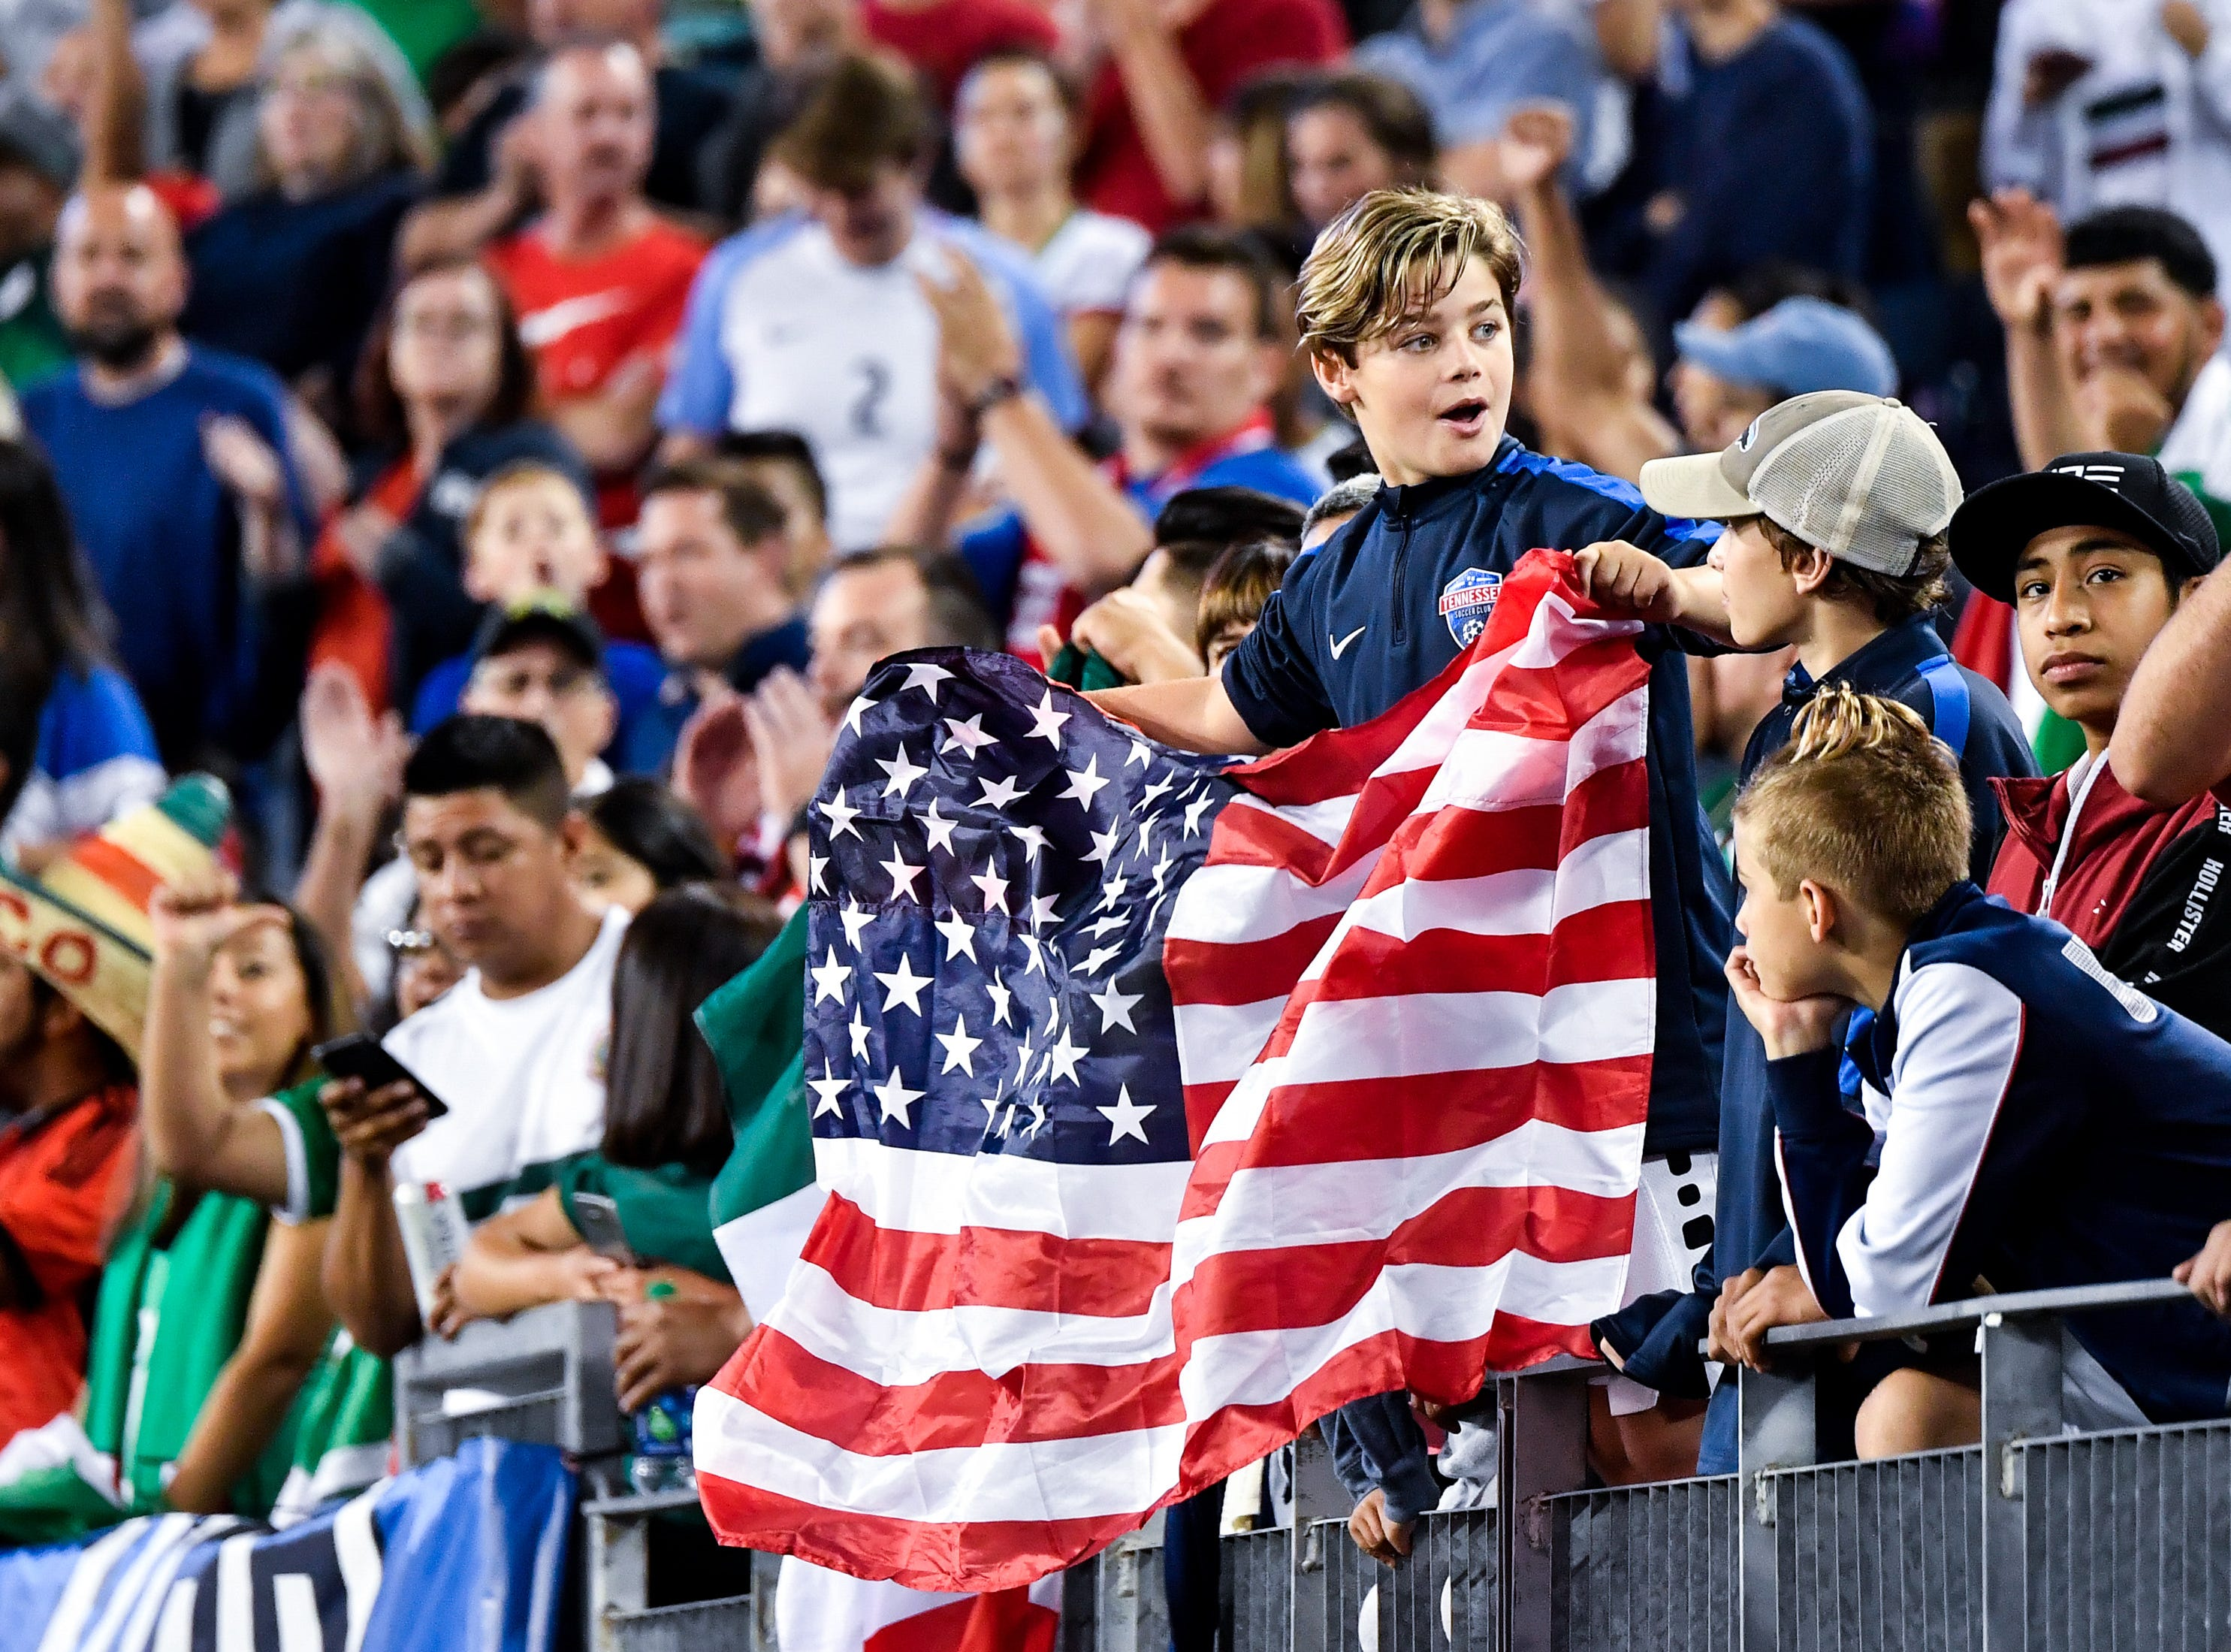 Fans cheer before the game between USA and Mexico at Nissan Stadium in Nashville, Tenn., Tuesday, Sept. 11, 2018.